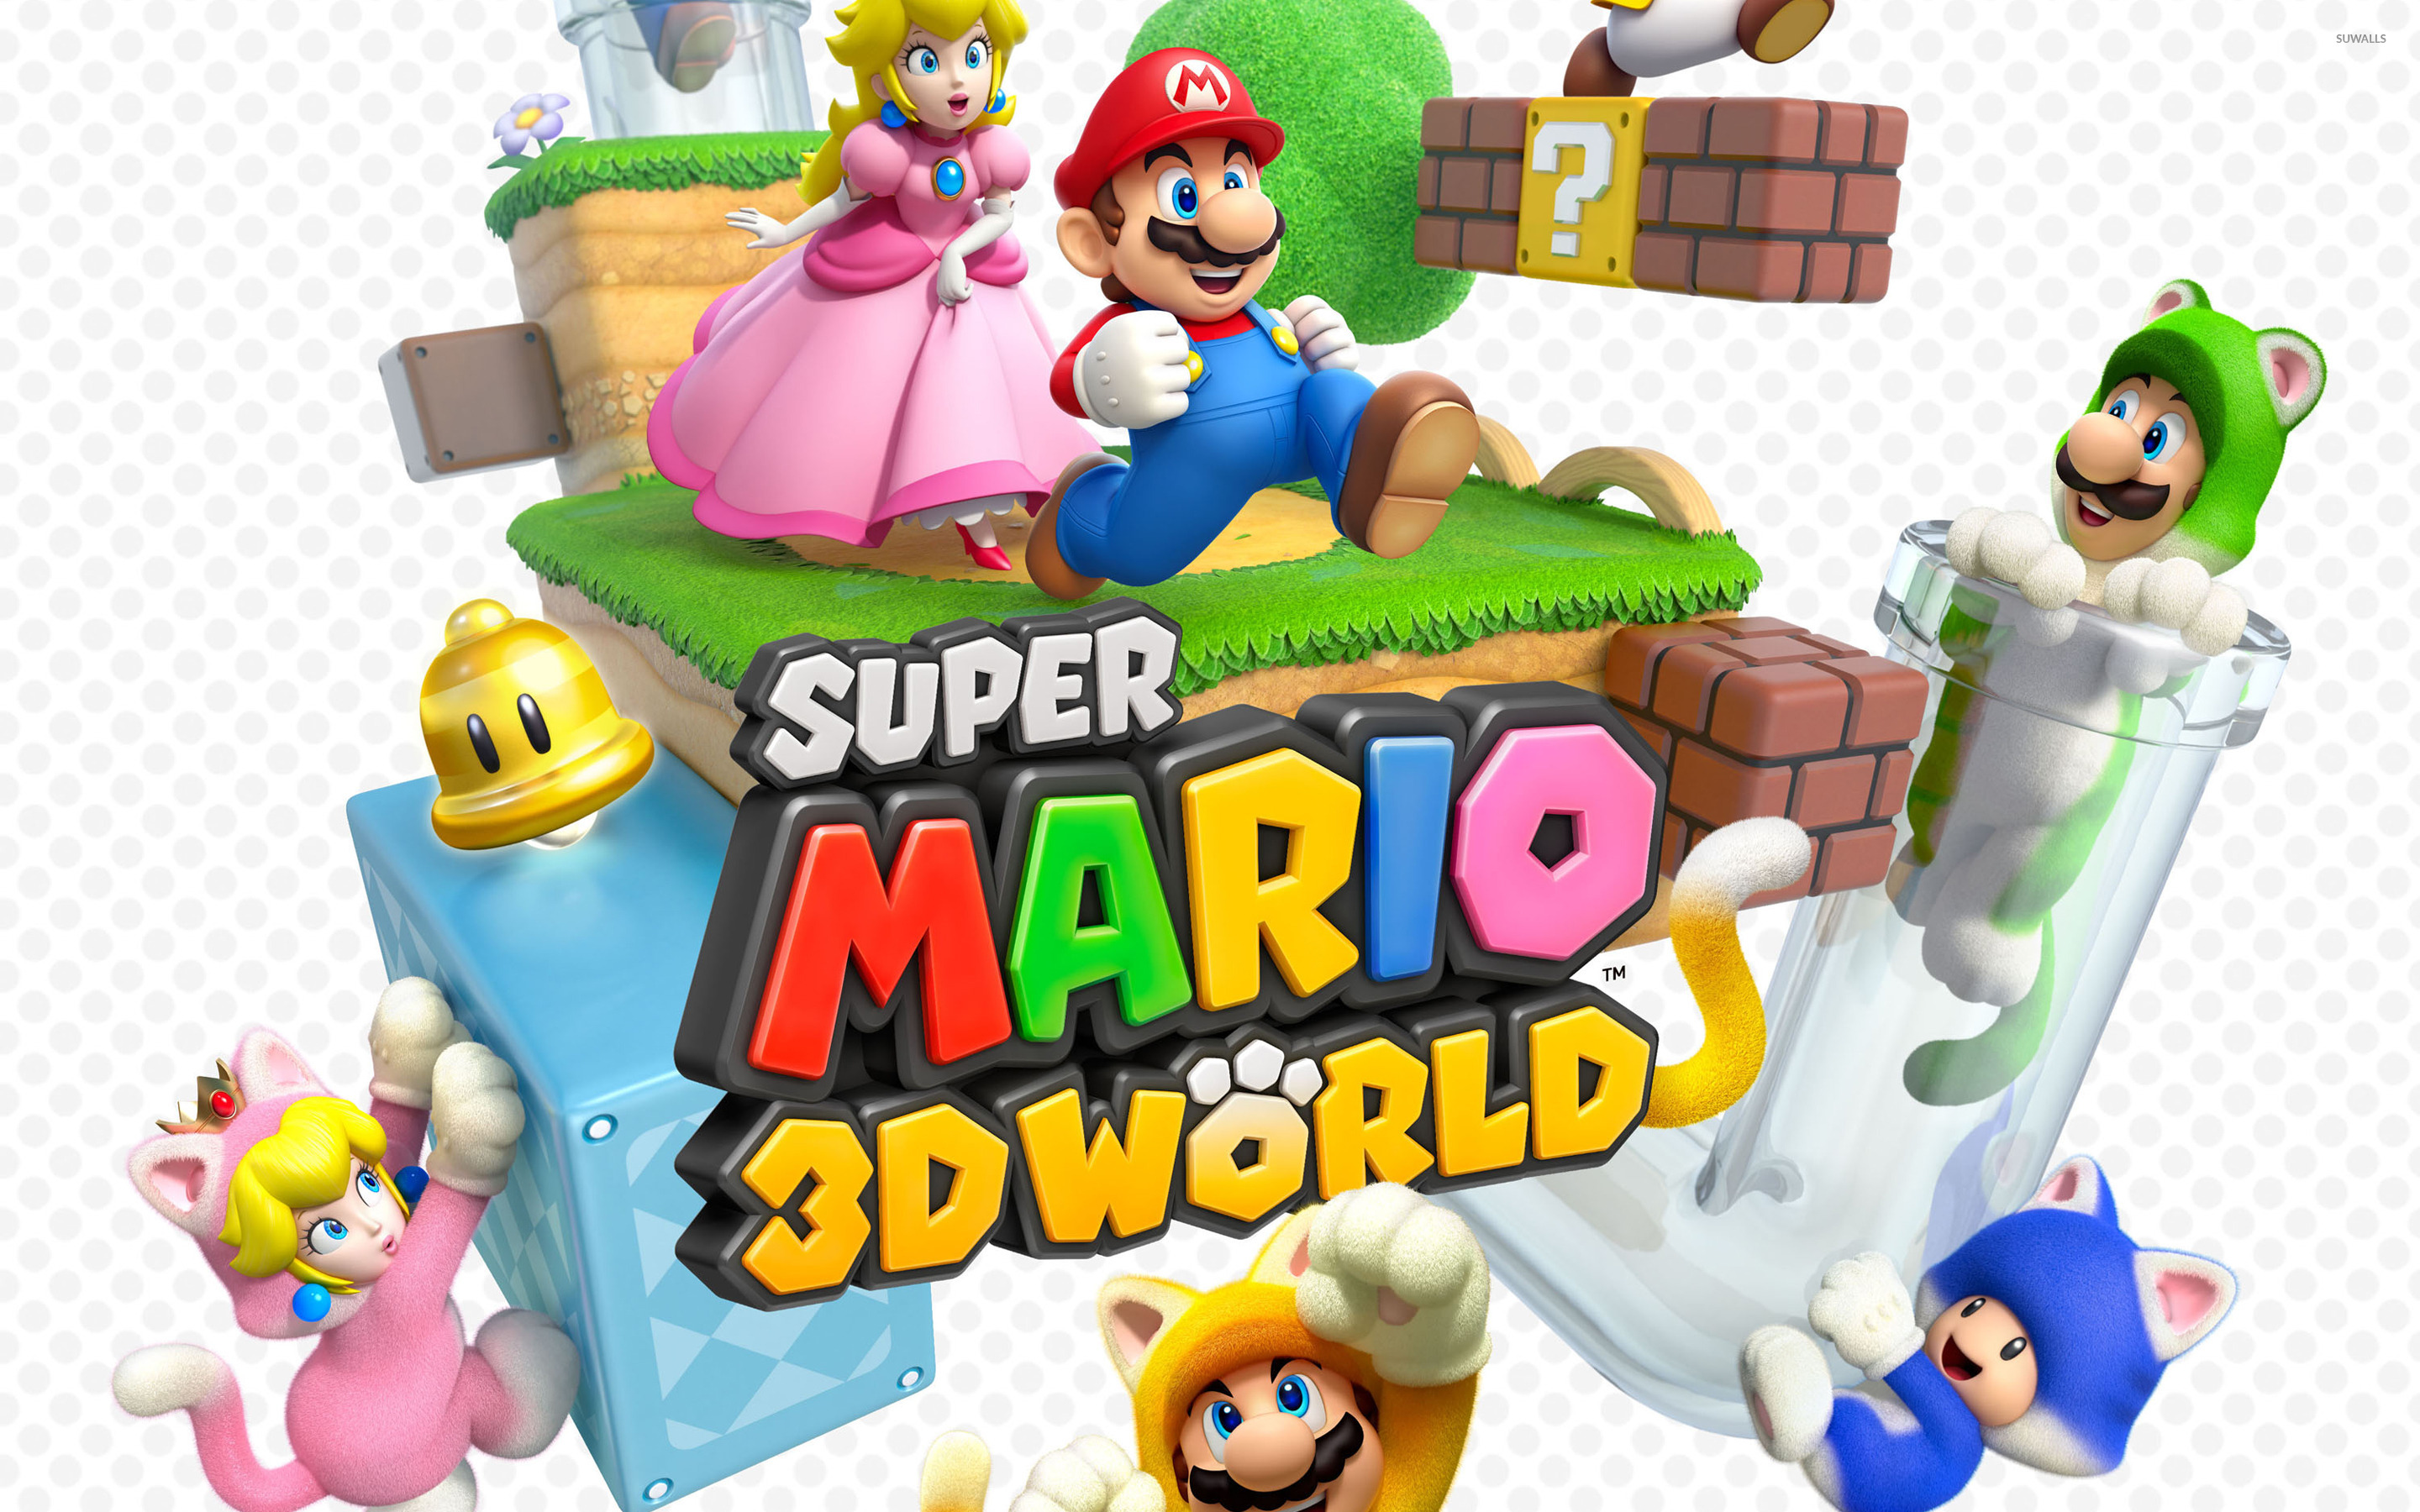 Super Mario 3d World Wallpaper Game Wallpapers 21460